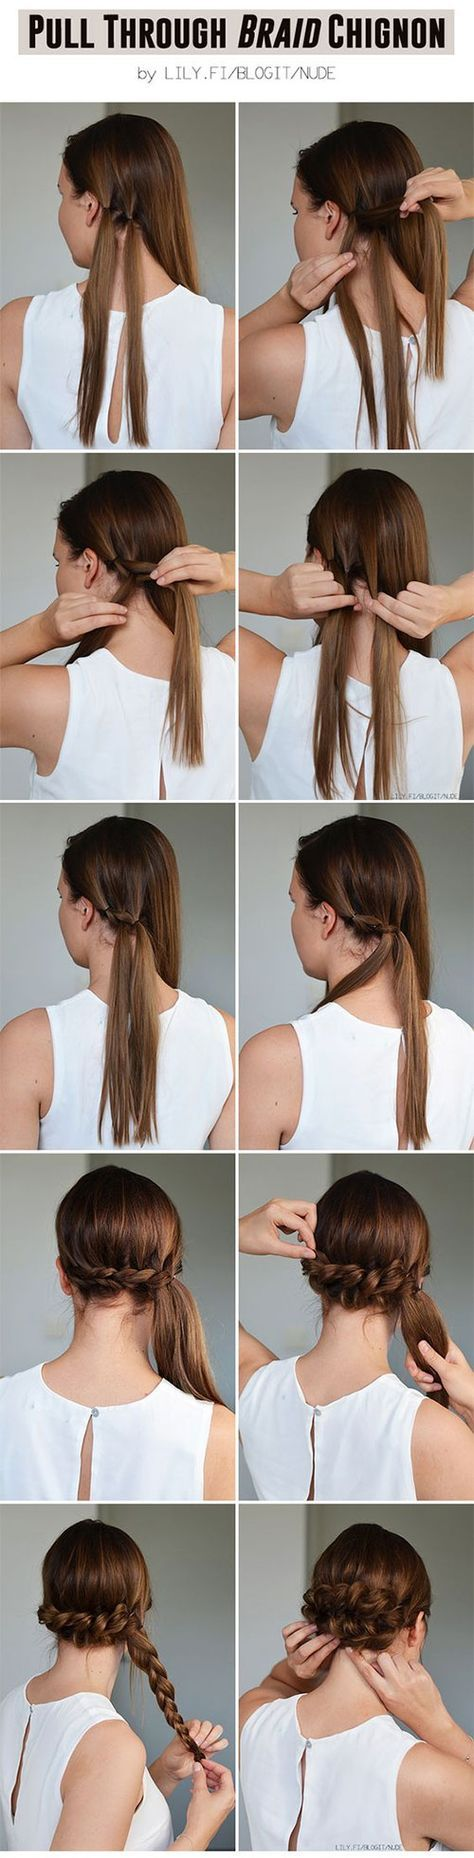 Long hair updos how to style for prom tutorials easy hairstyles